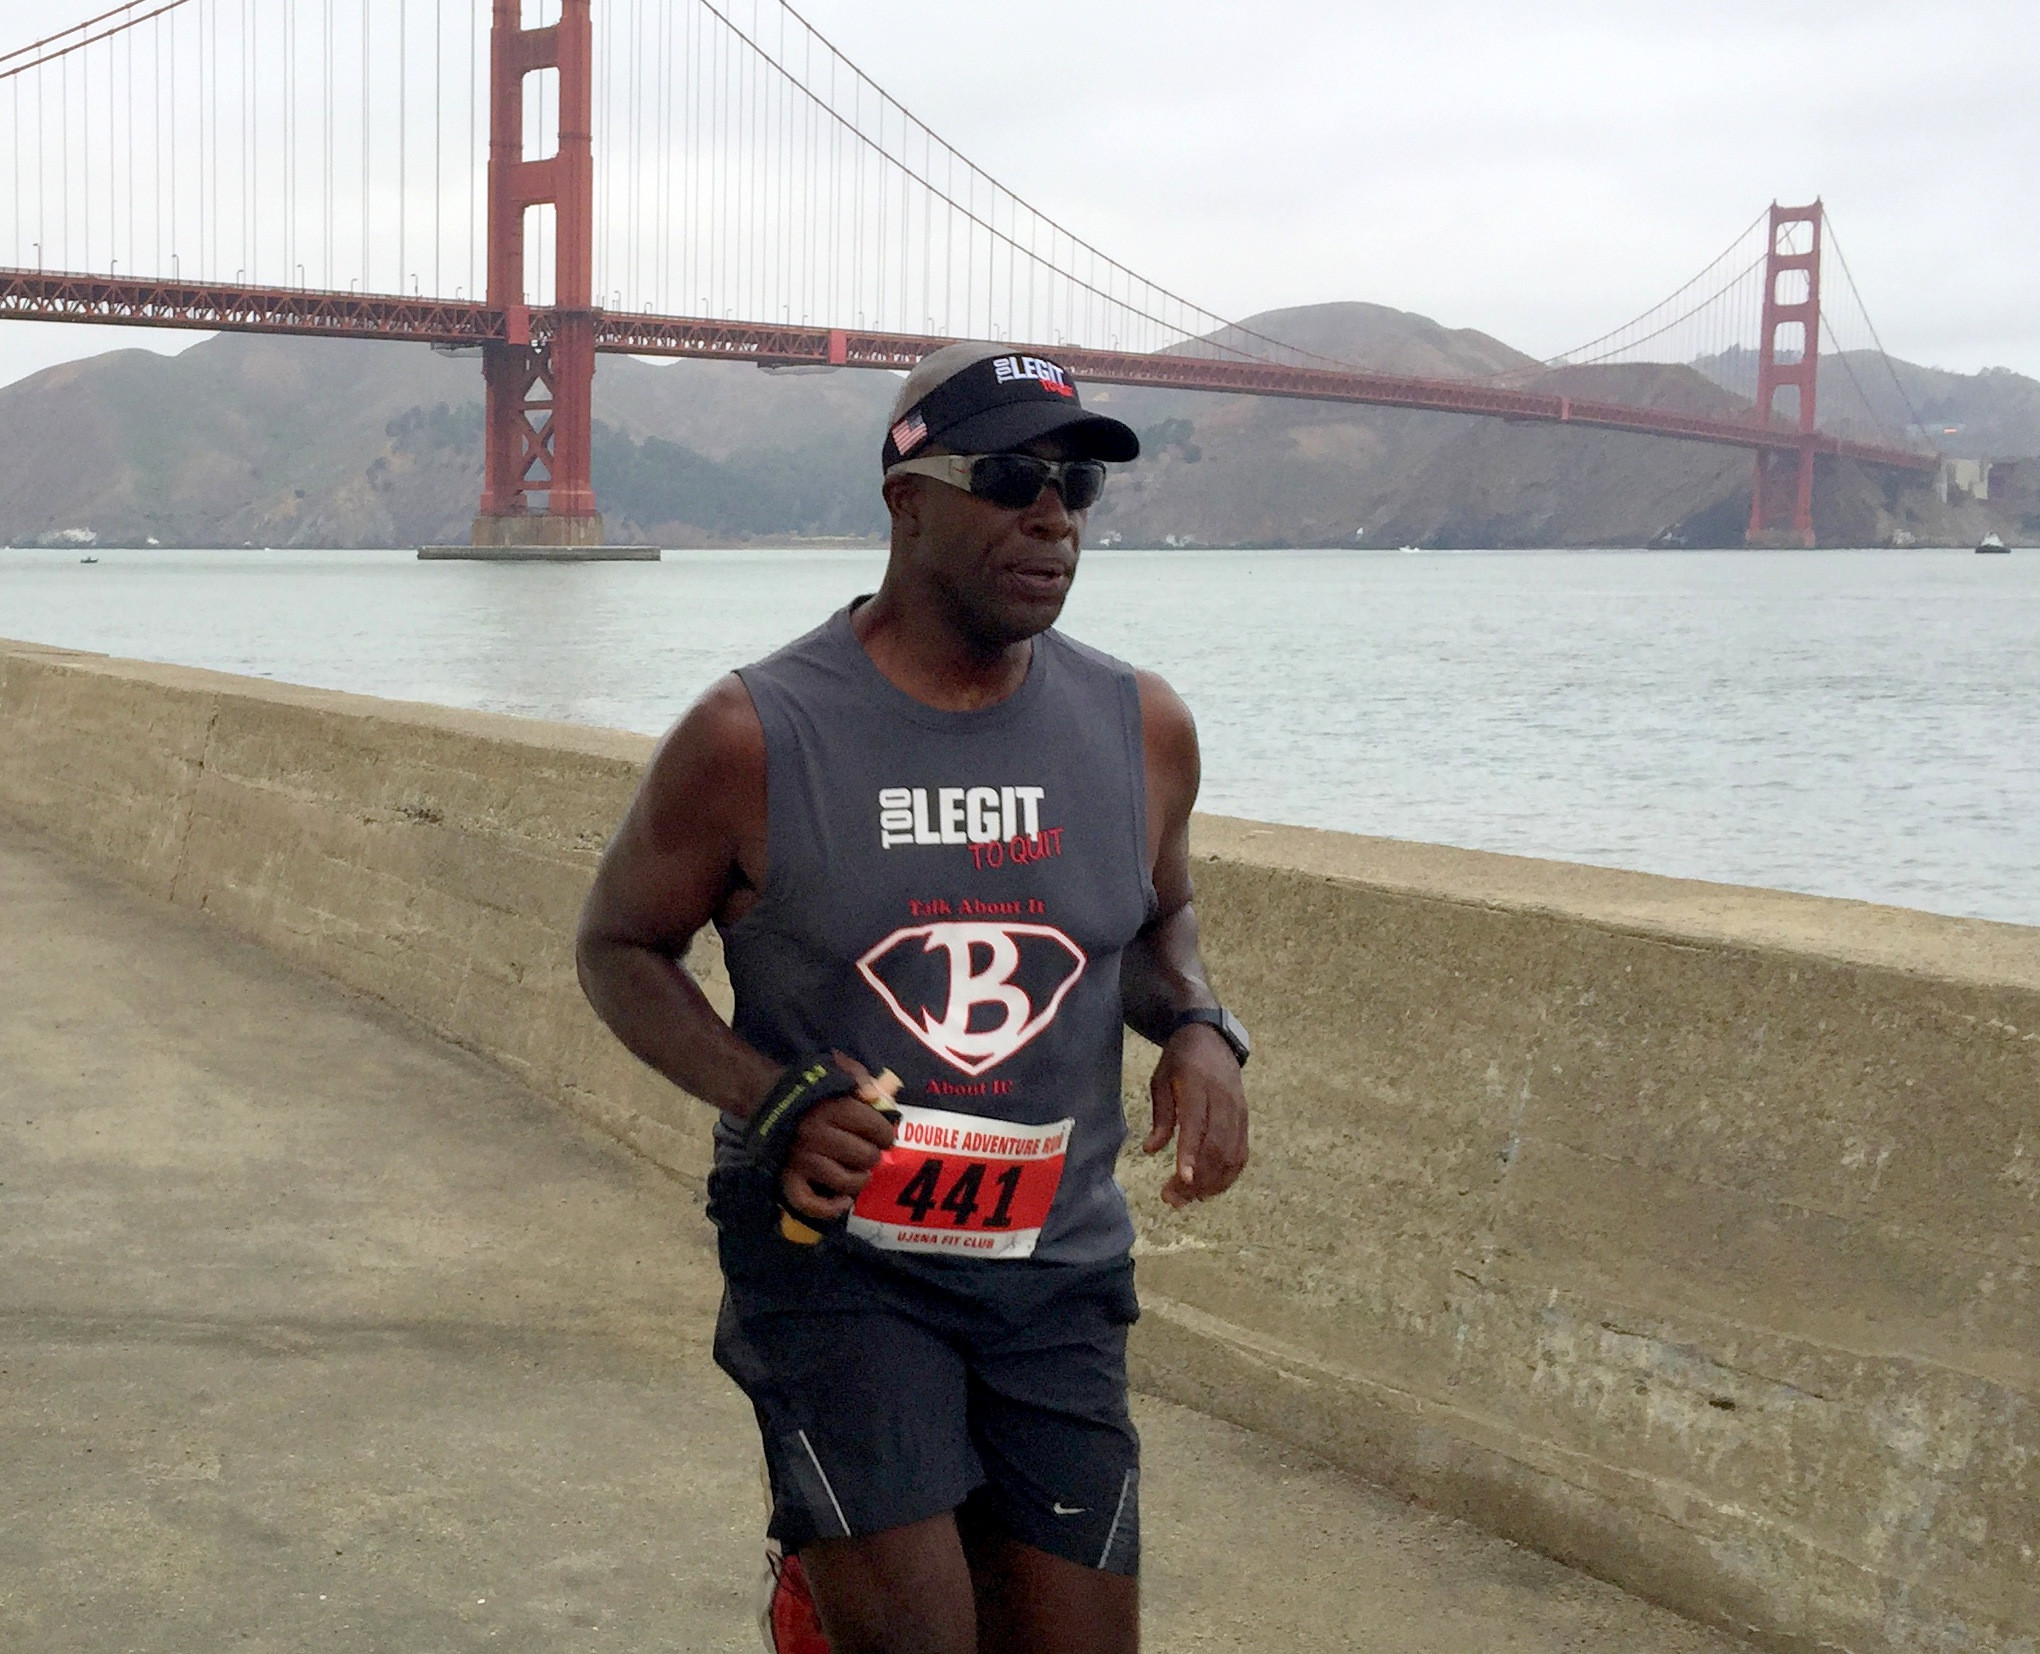 Global Run Challenge Profile: Bertrand Newson aka Coach B gets immense pleasure encouraging others to get active